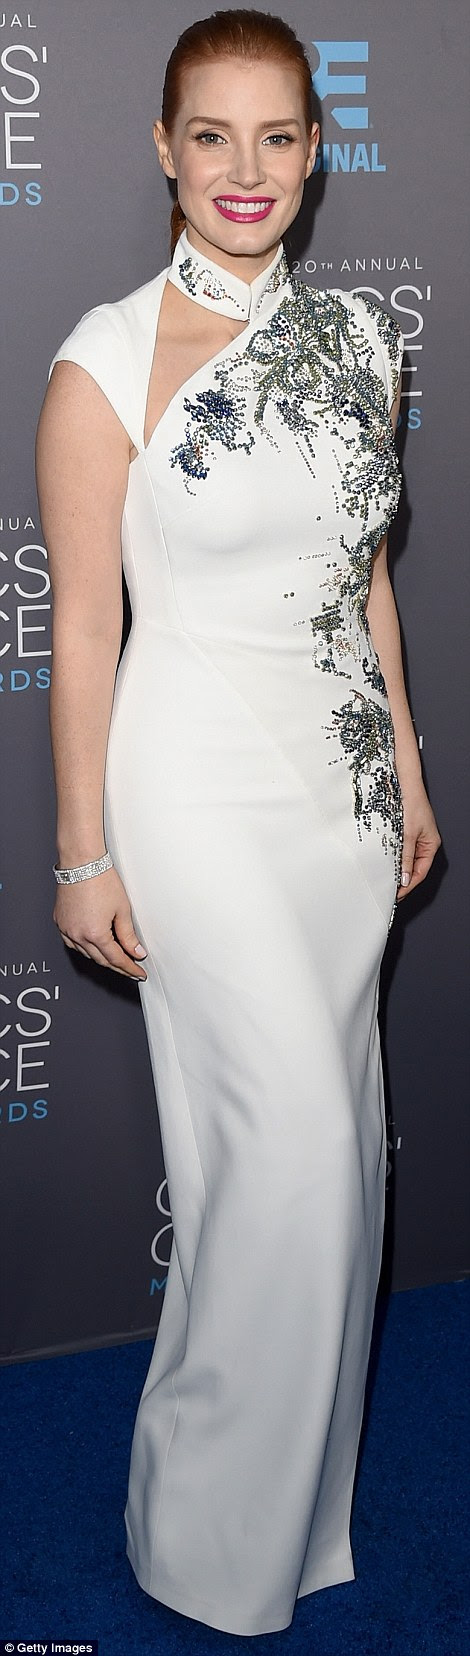 http://i.dailymail.co.uk/i/pix/2015/01/16/24BD3CC500000578-2912447-Special_night_Jessica_Chastain_picked_up_the_first_ever_MVP_Awar-a-333_1421382111983.jpg